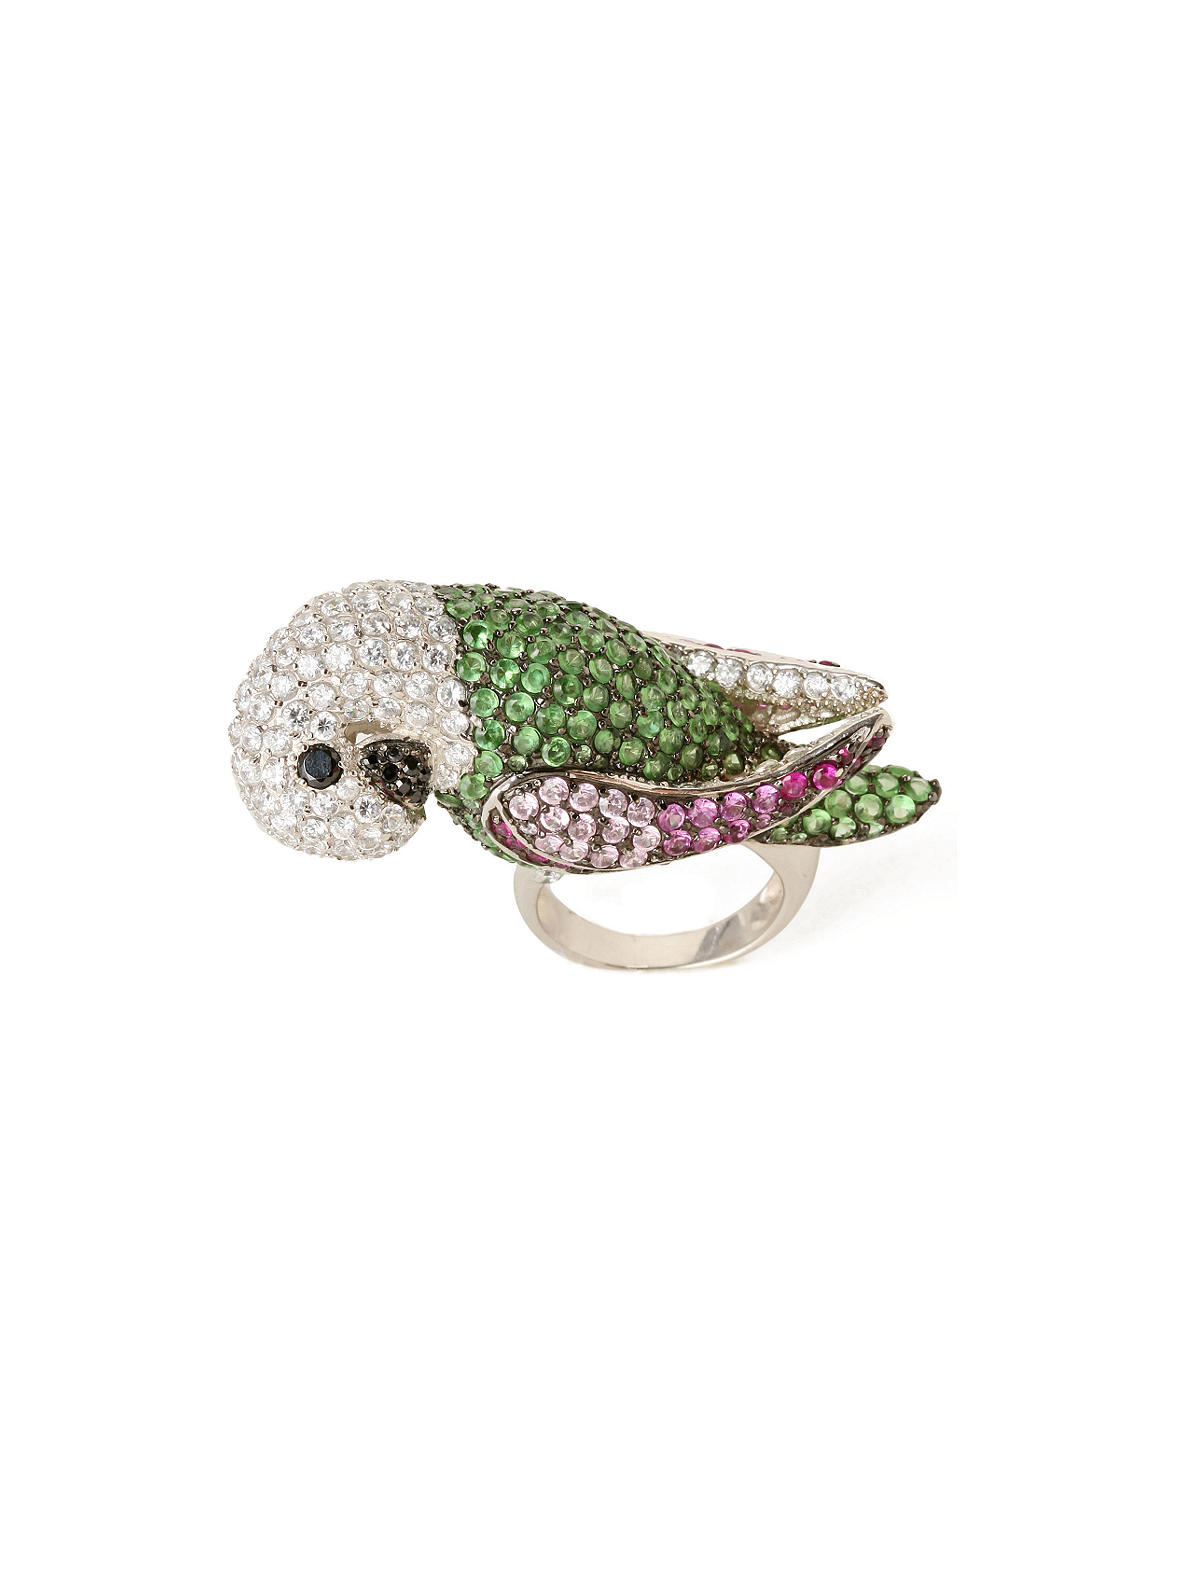 Jeweled Parrot Ring - Anthropologie.com from anthropologie.com